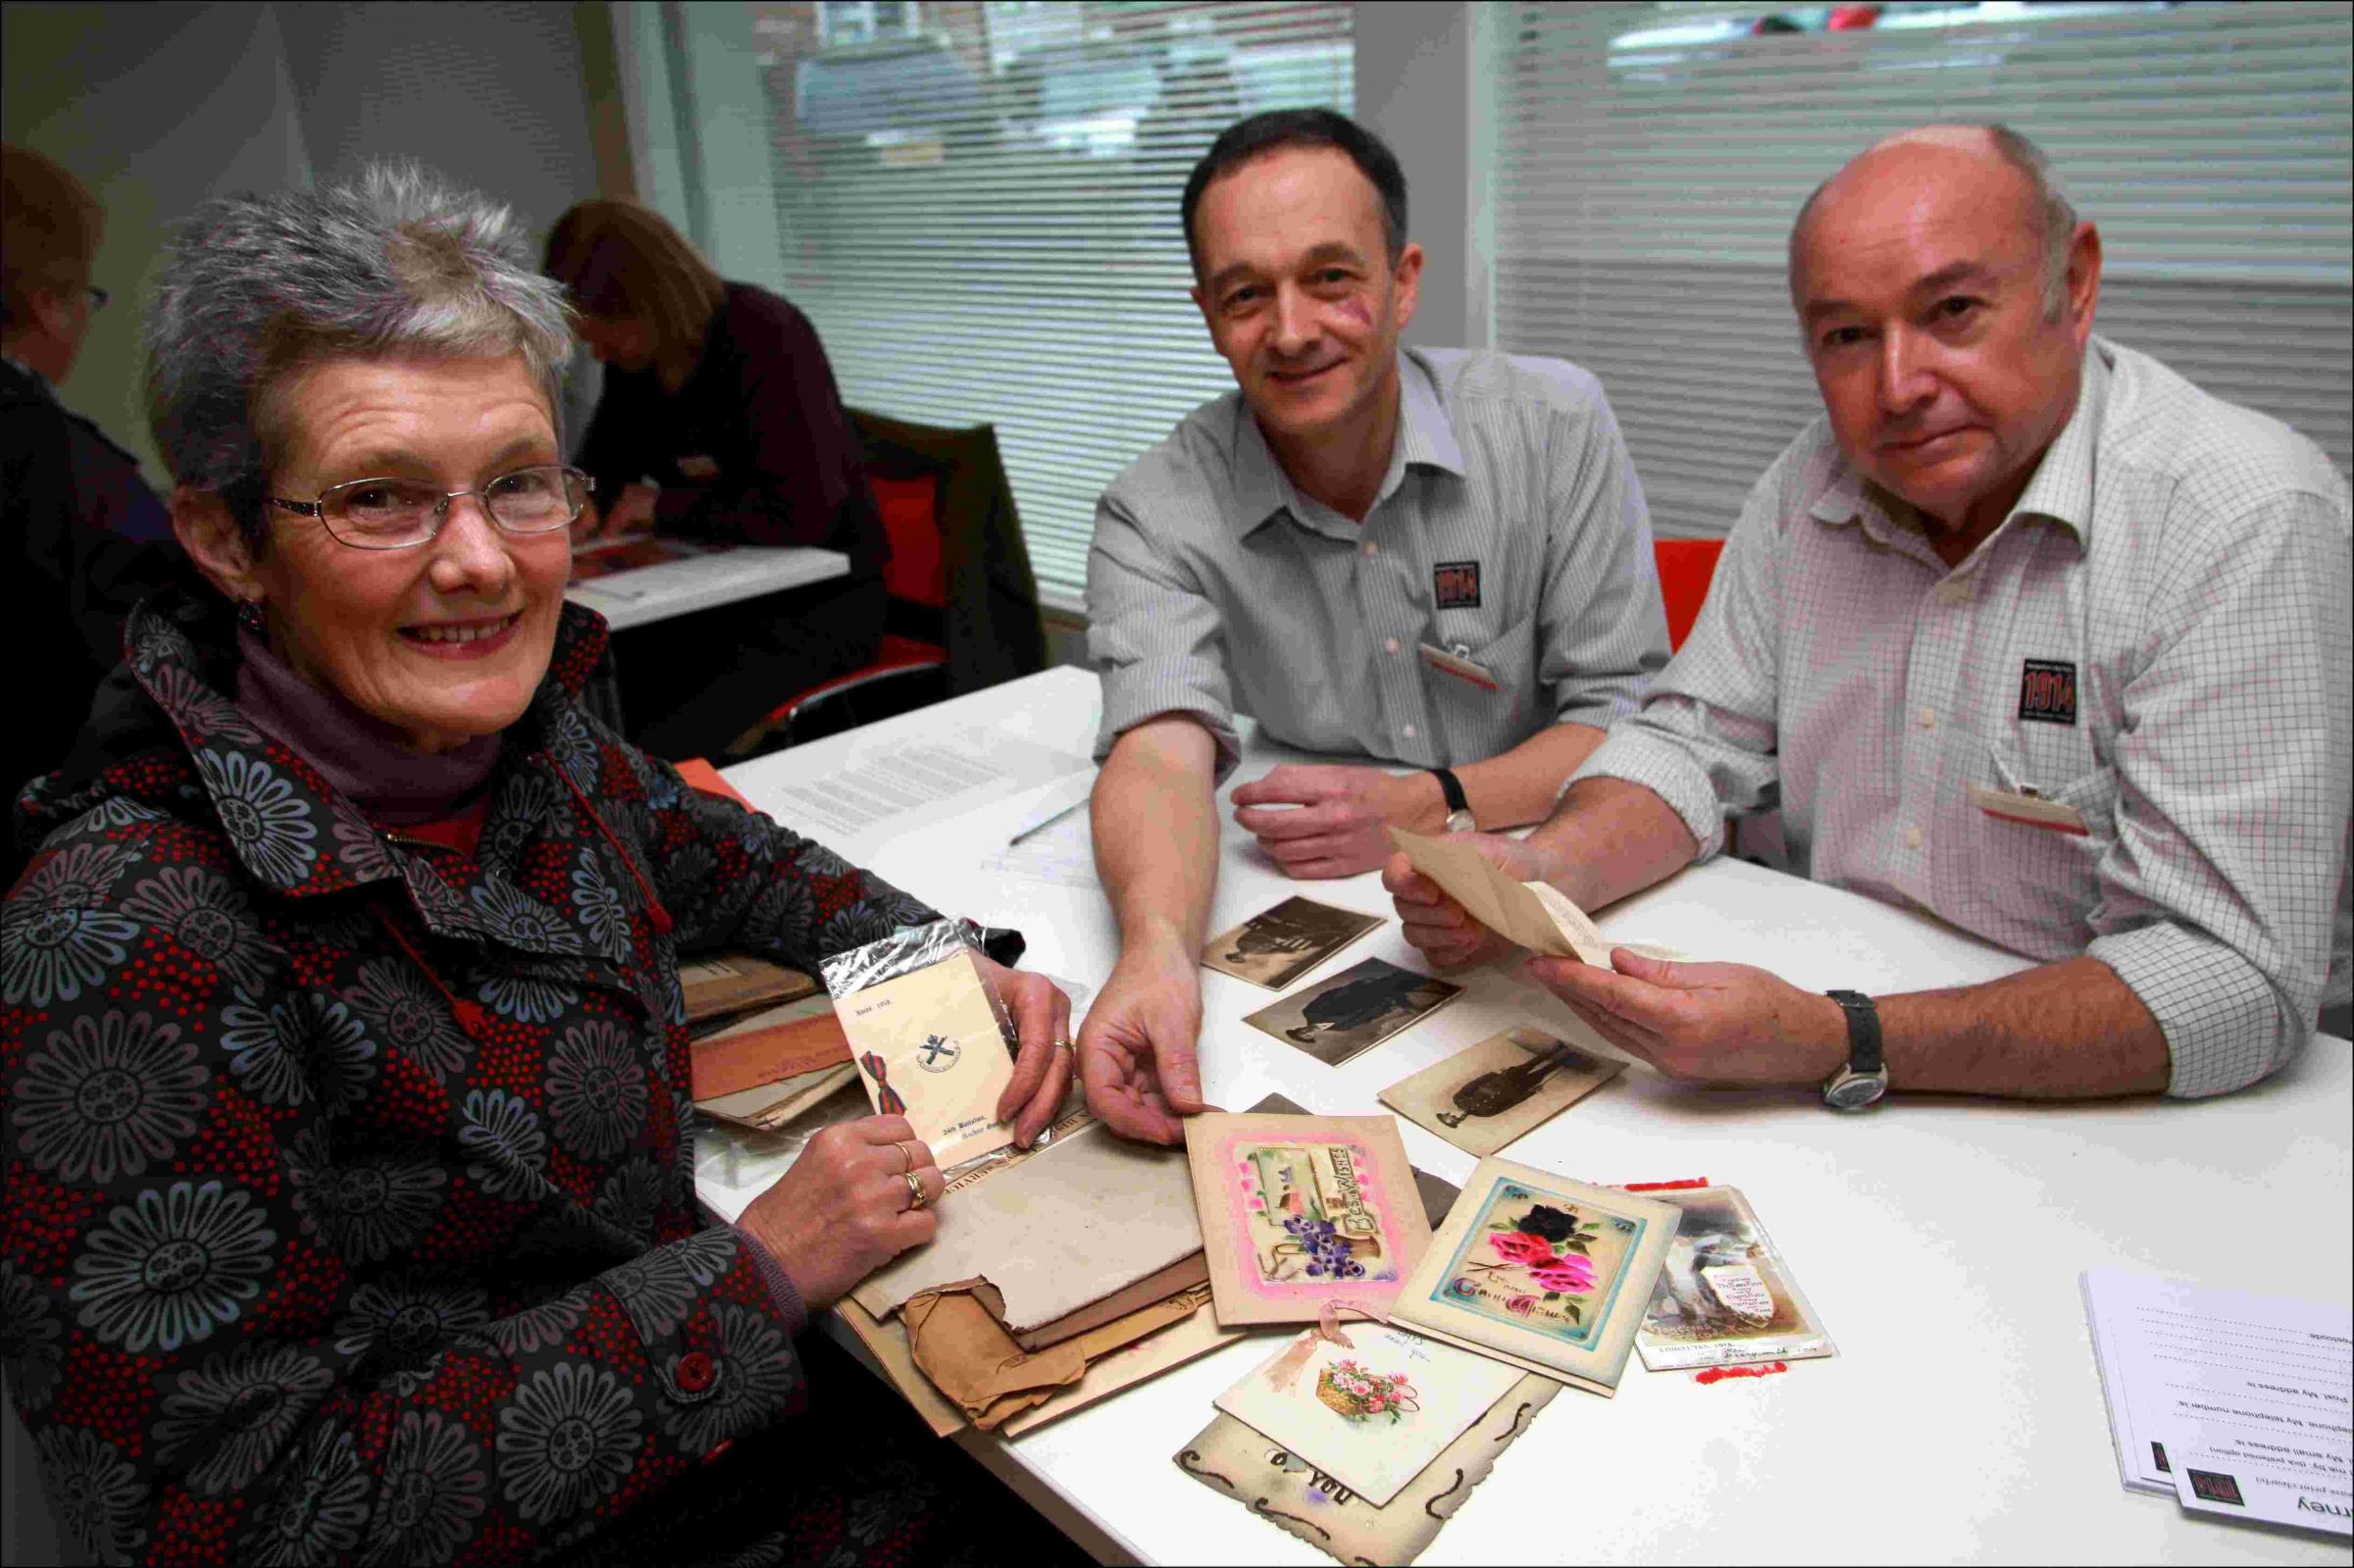 Lynda Emery, left, with artefacts she brought in, with Robin Iles and Patrick Craze of Winchester City Museums.